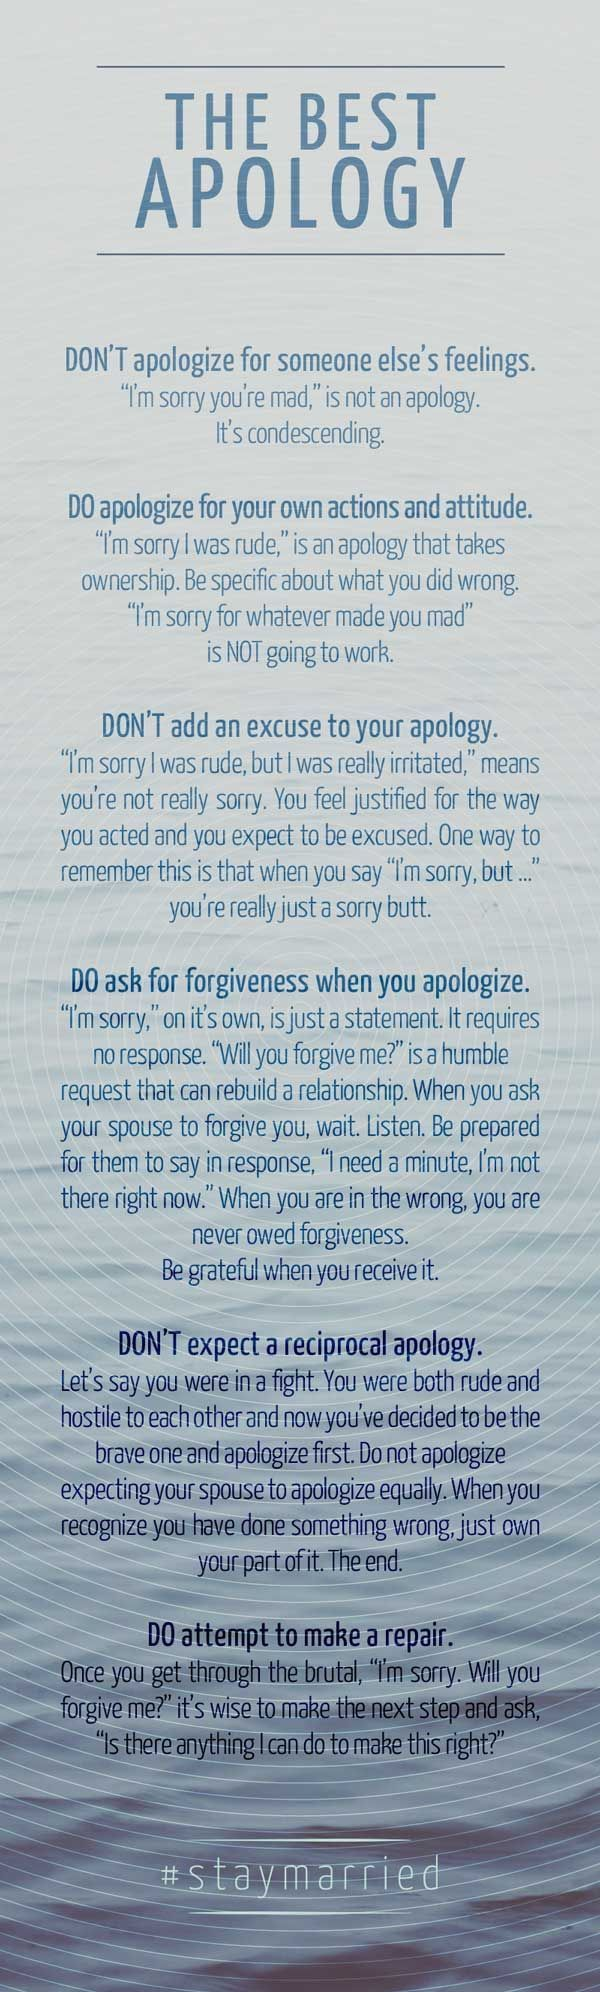 The Best Apology